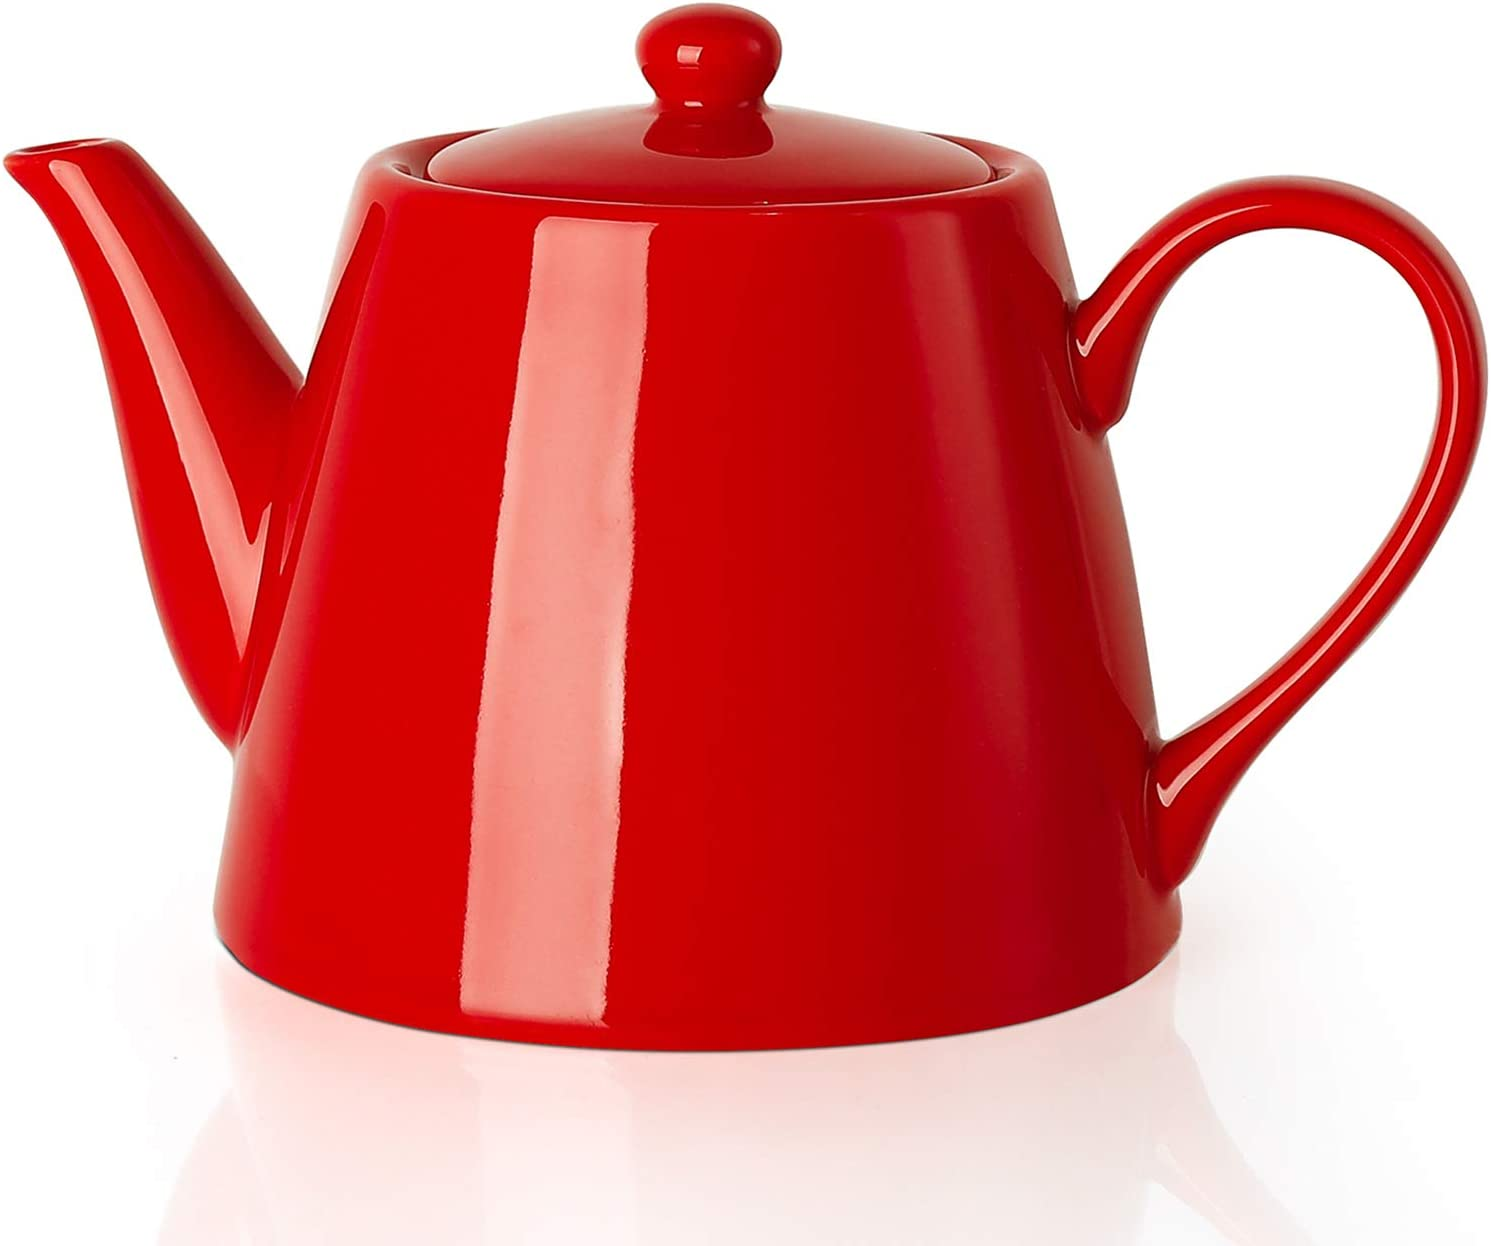 Sweese 223.104 Porcelain Teapot, 28 Ounce Serving Teapot for 2, Red